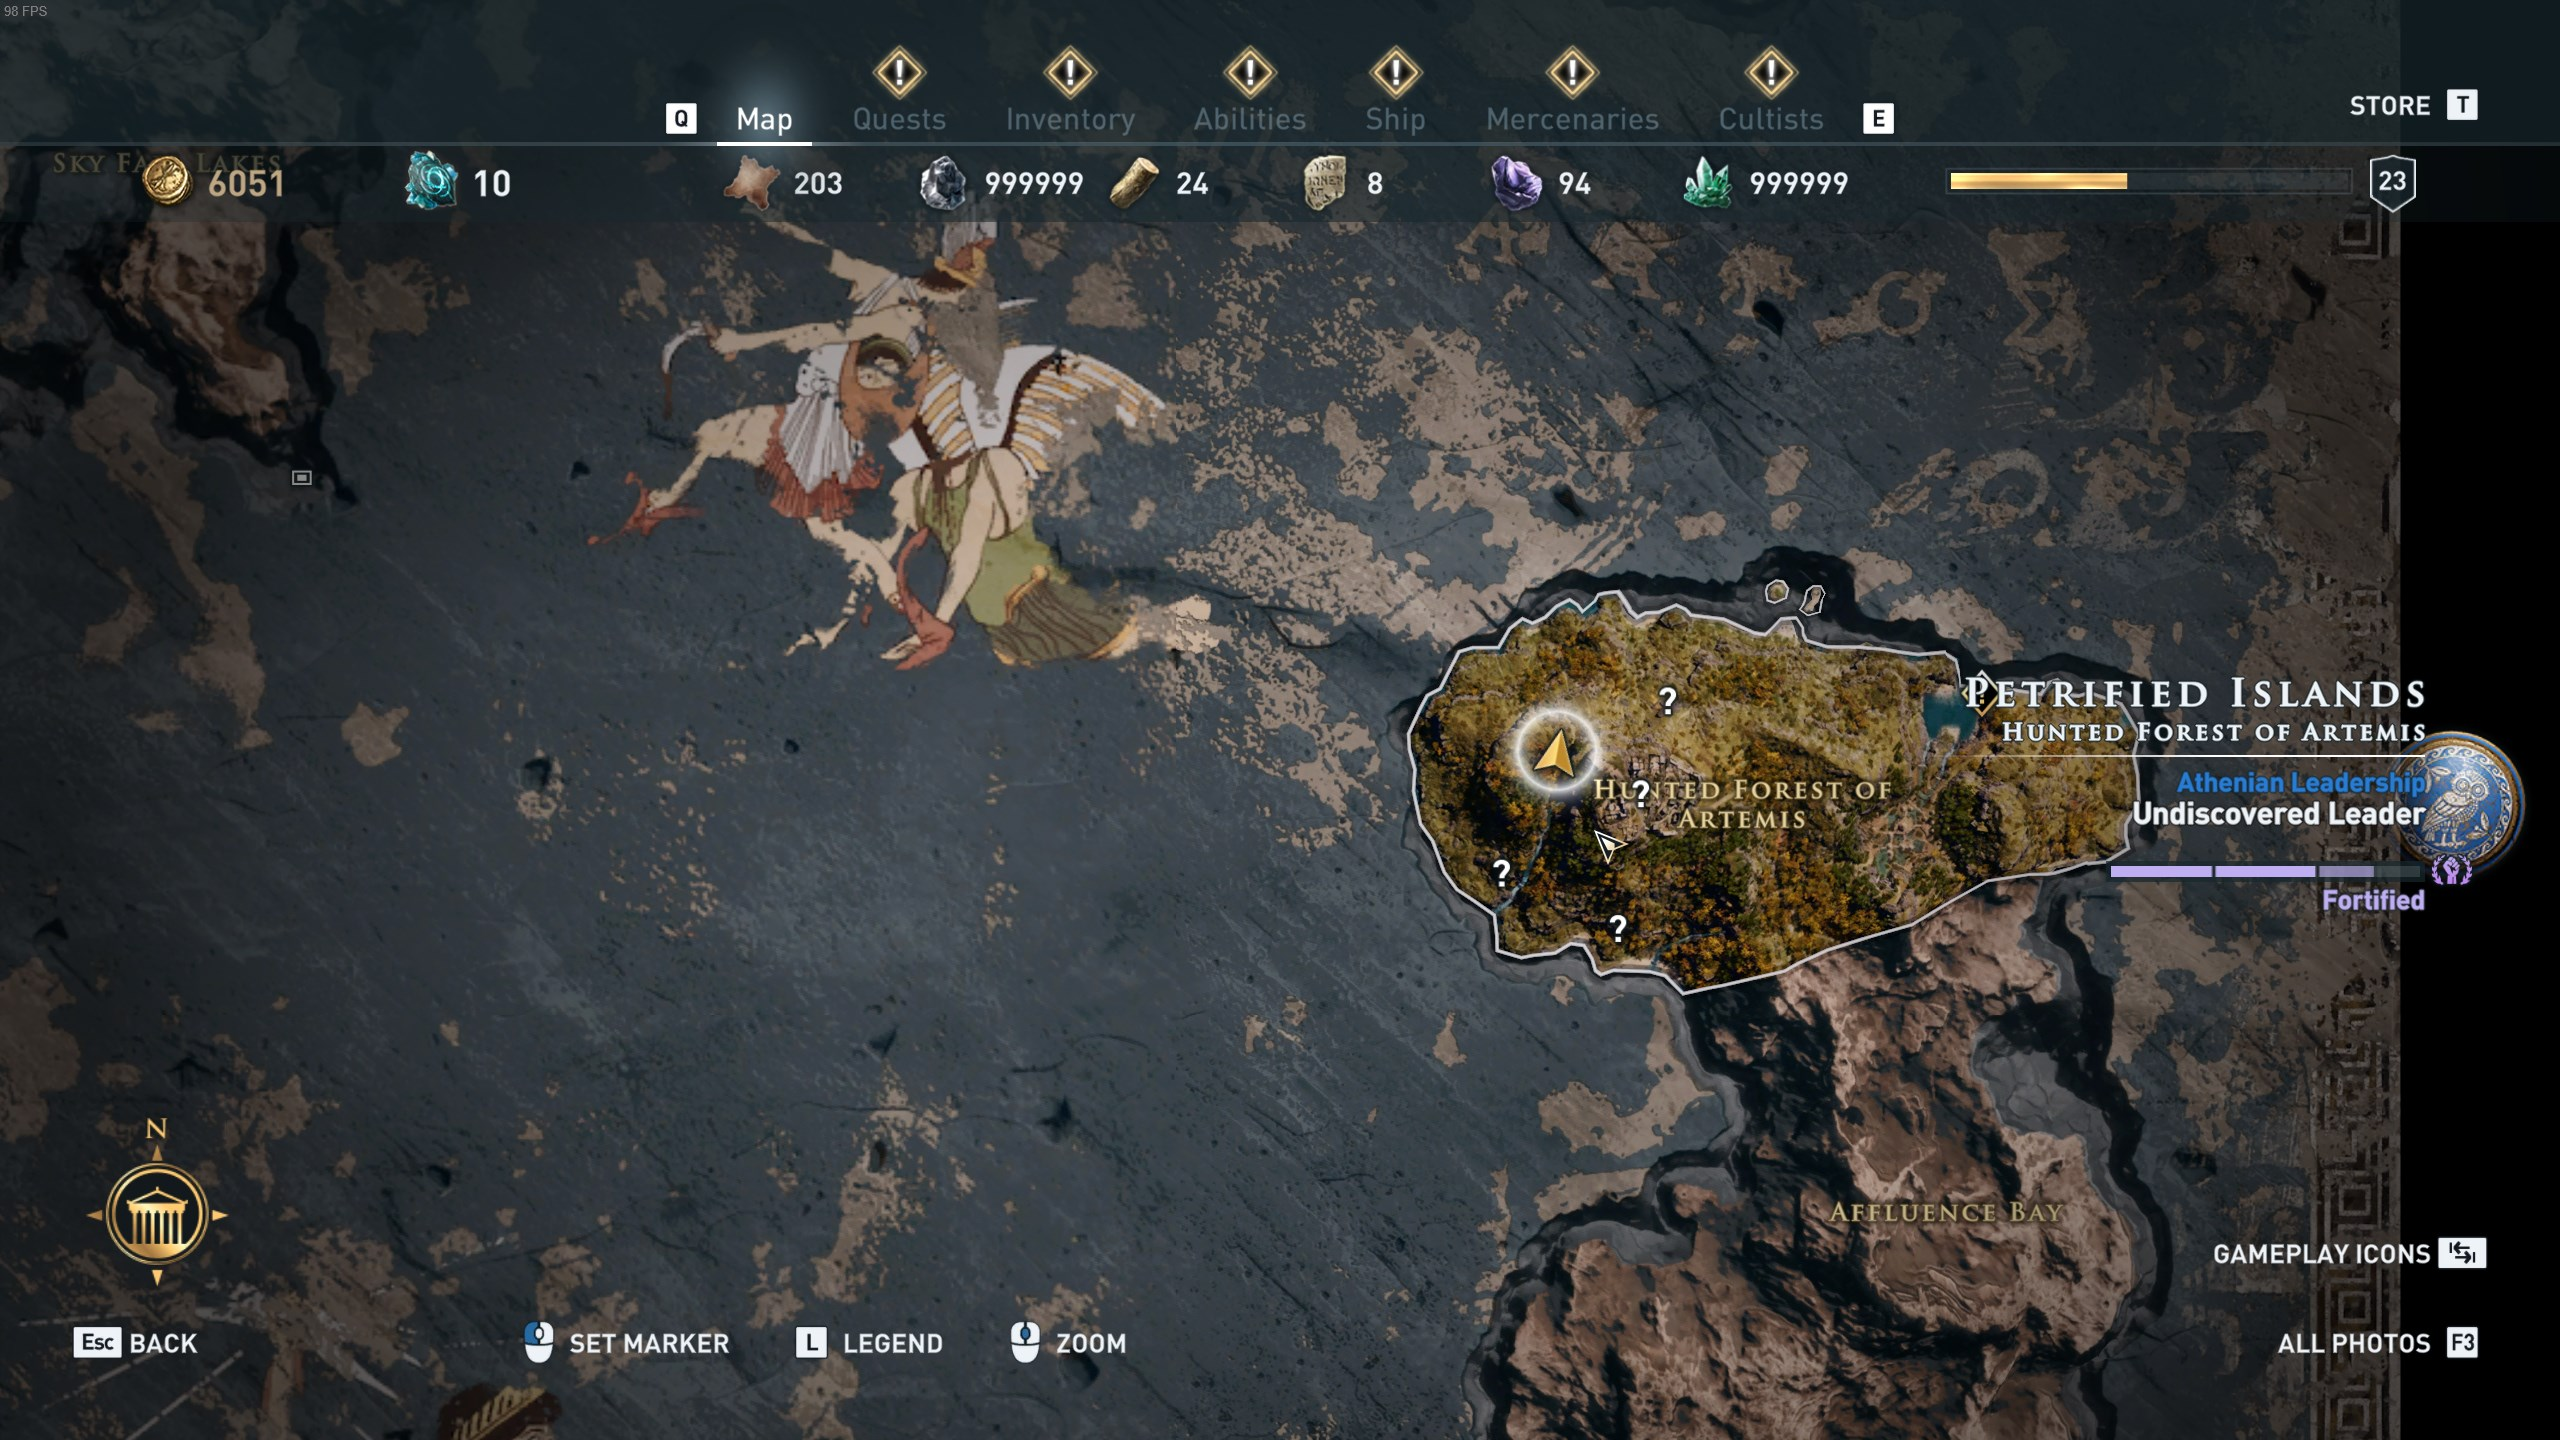 Assassin's Creed Odyssey - Iokaste the Seer location